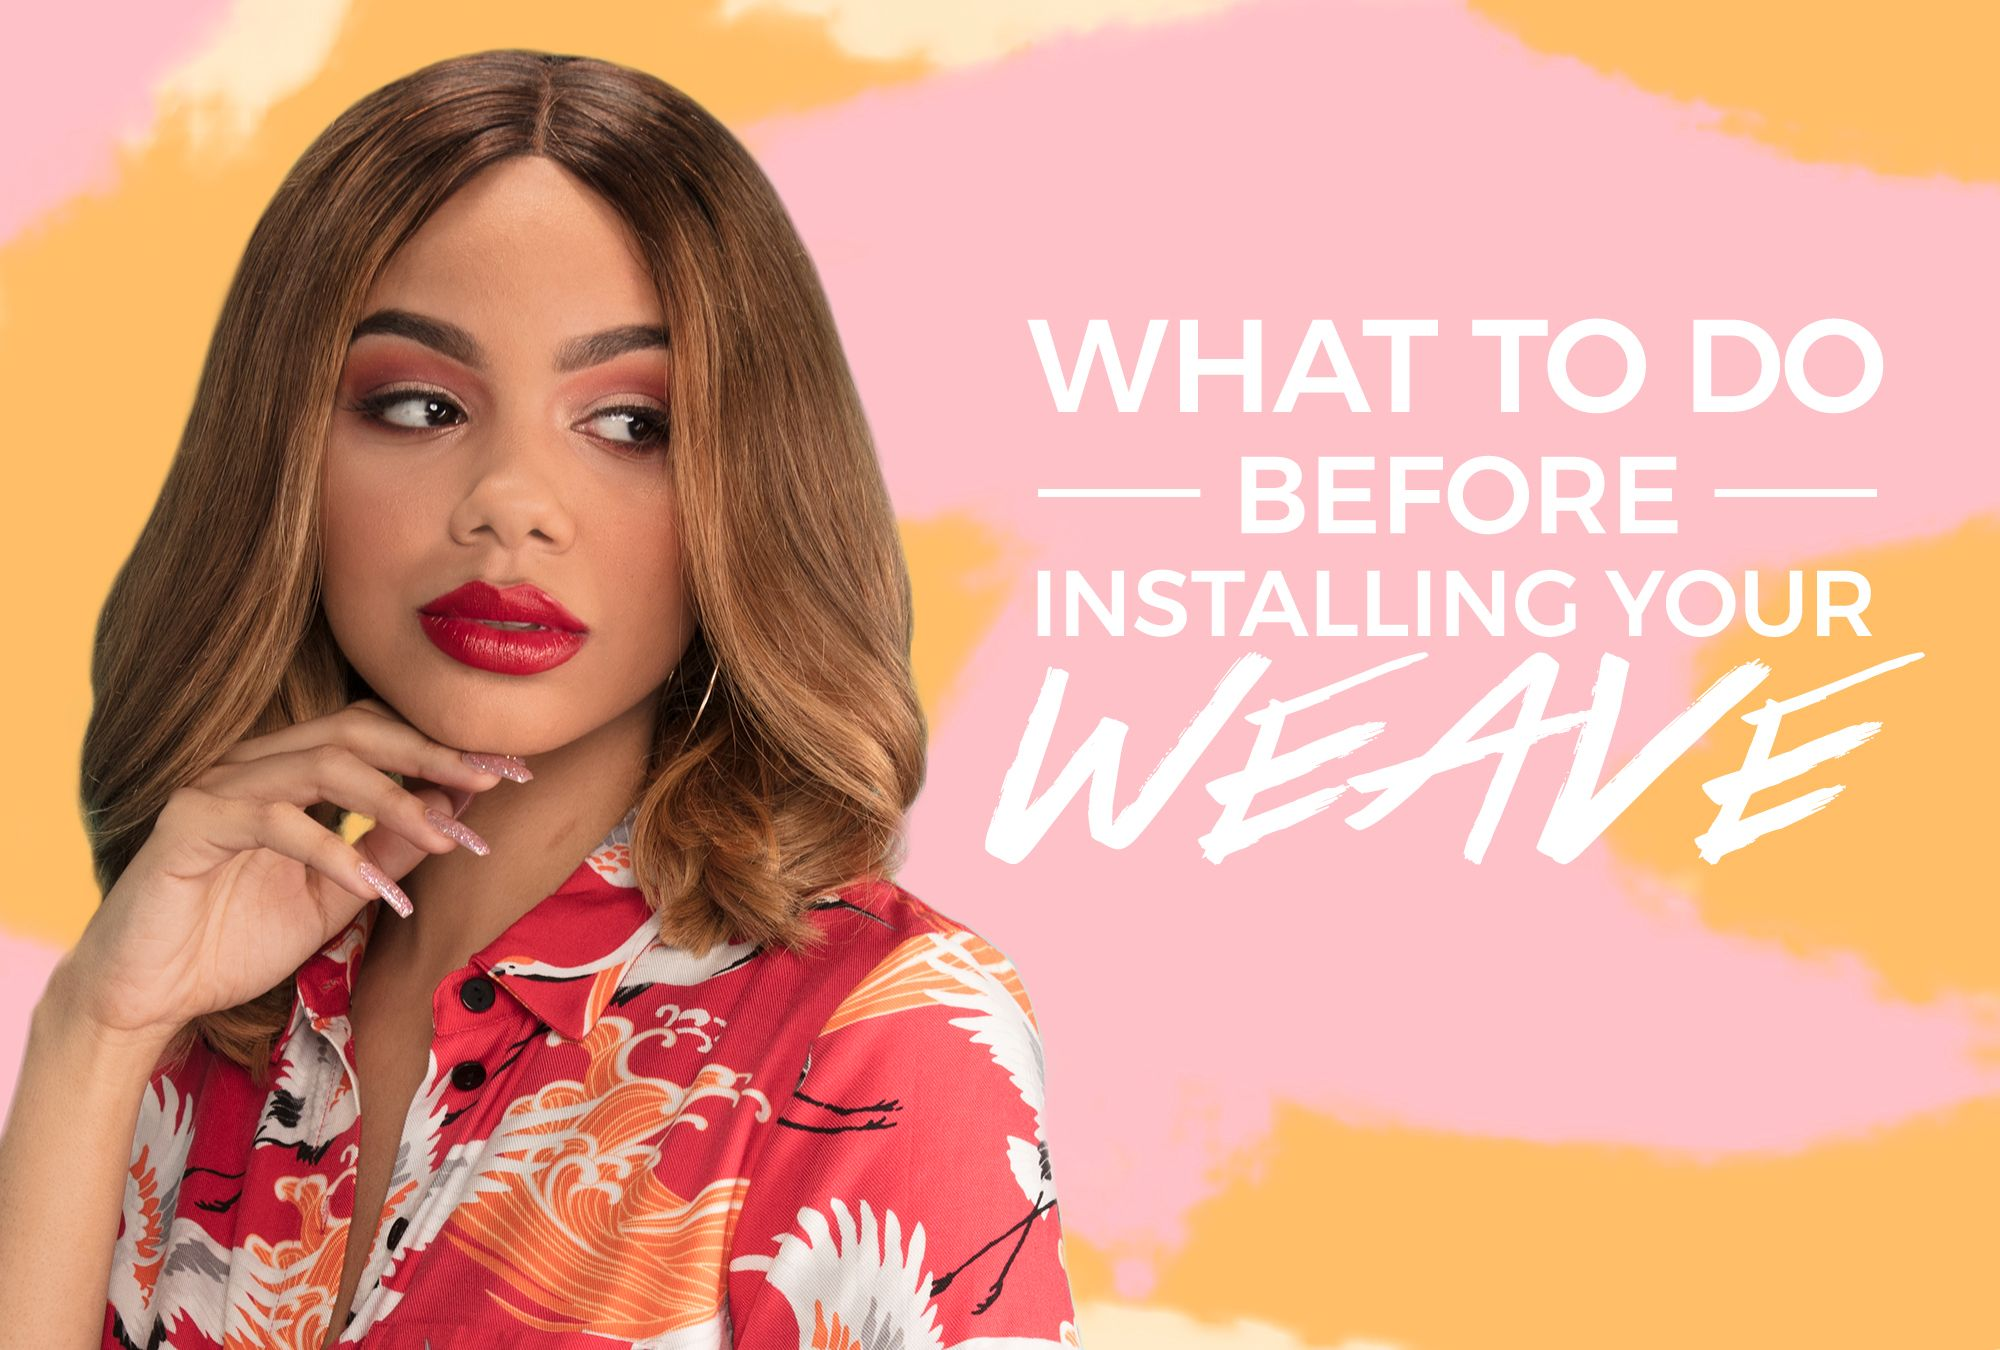 Don't Install Your Weave Without Doing These 3 Things